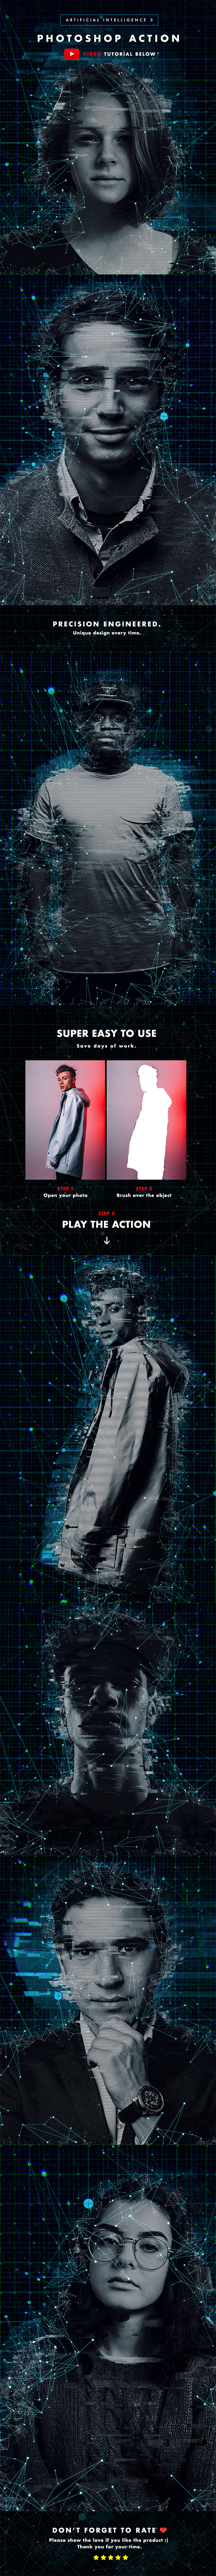 Artificial Intelligence 3 Photoshop Action - Photo Effects Actions